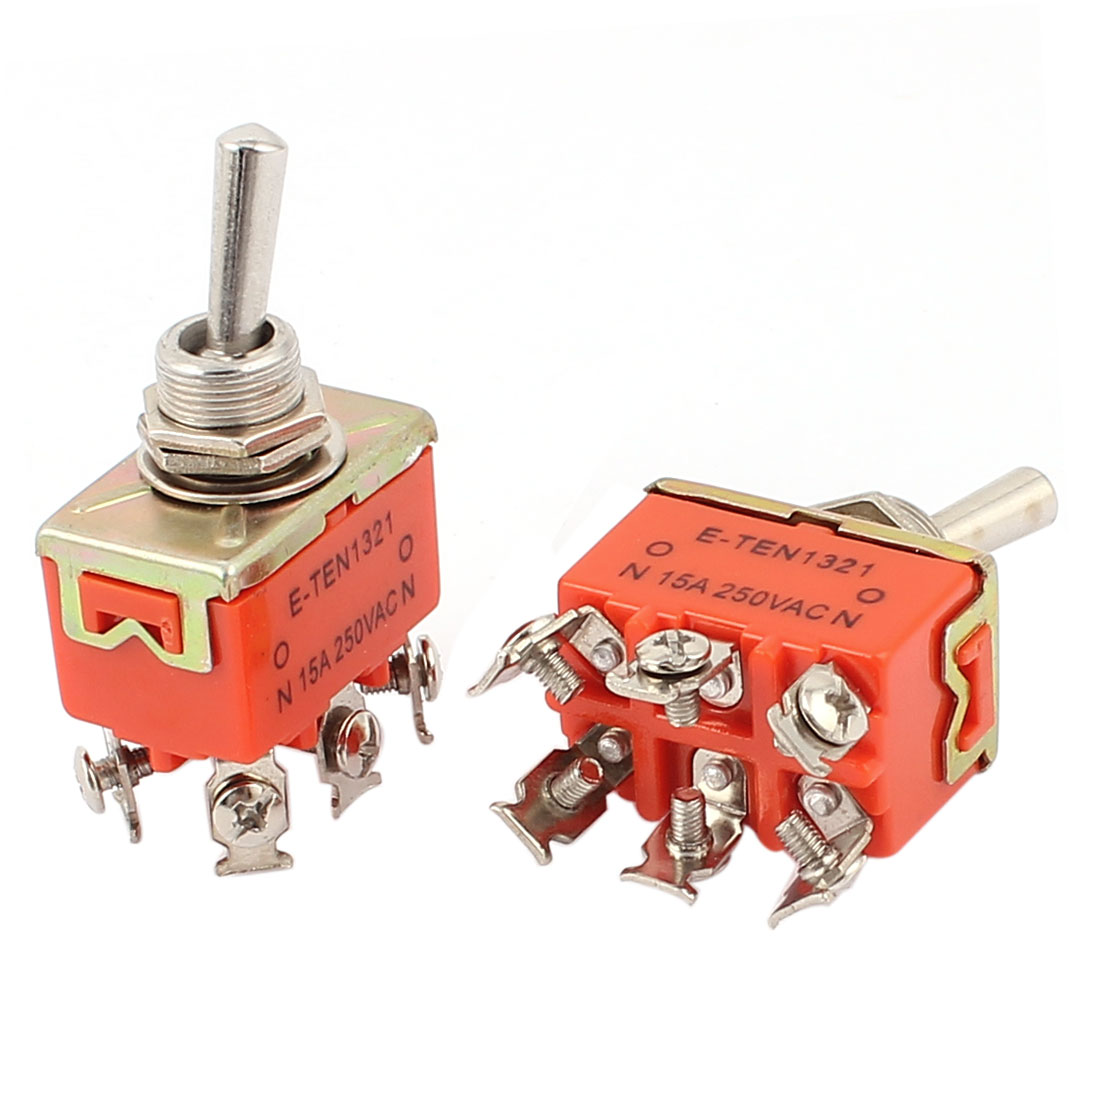 2Pcs E-TEN1321 AC 250V 15A DPDT ON-OFF 2 Position 6 Terminal M12 Panel Mounted Latching Toggle Switch